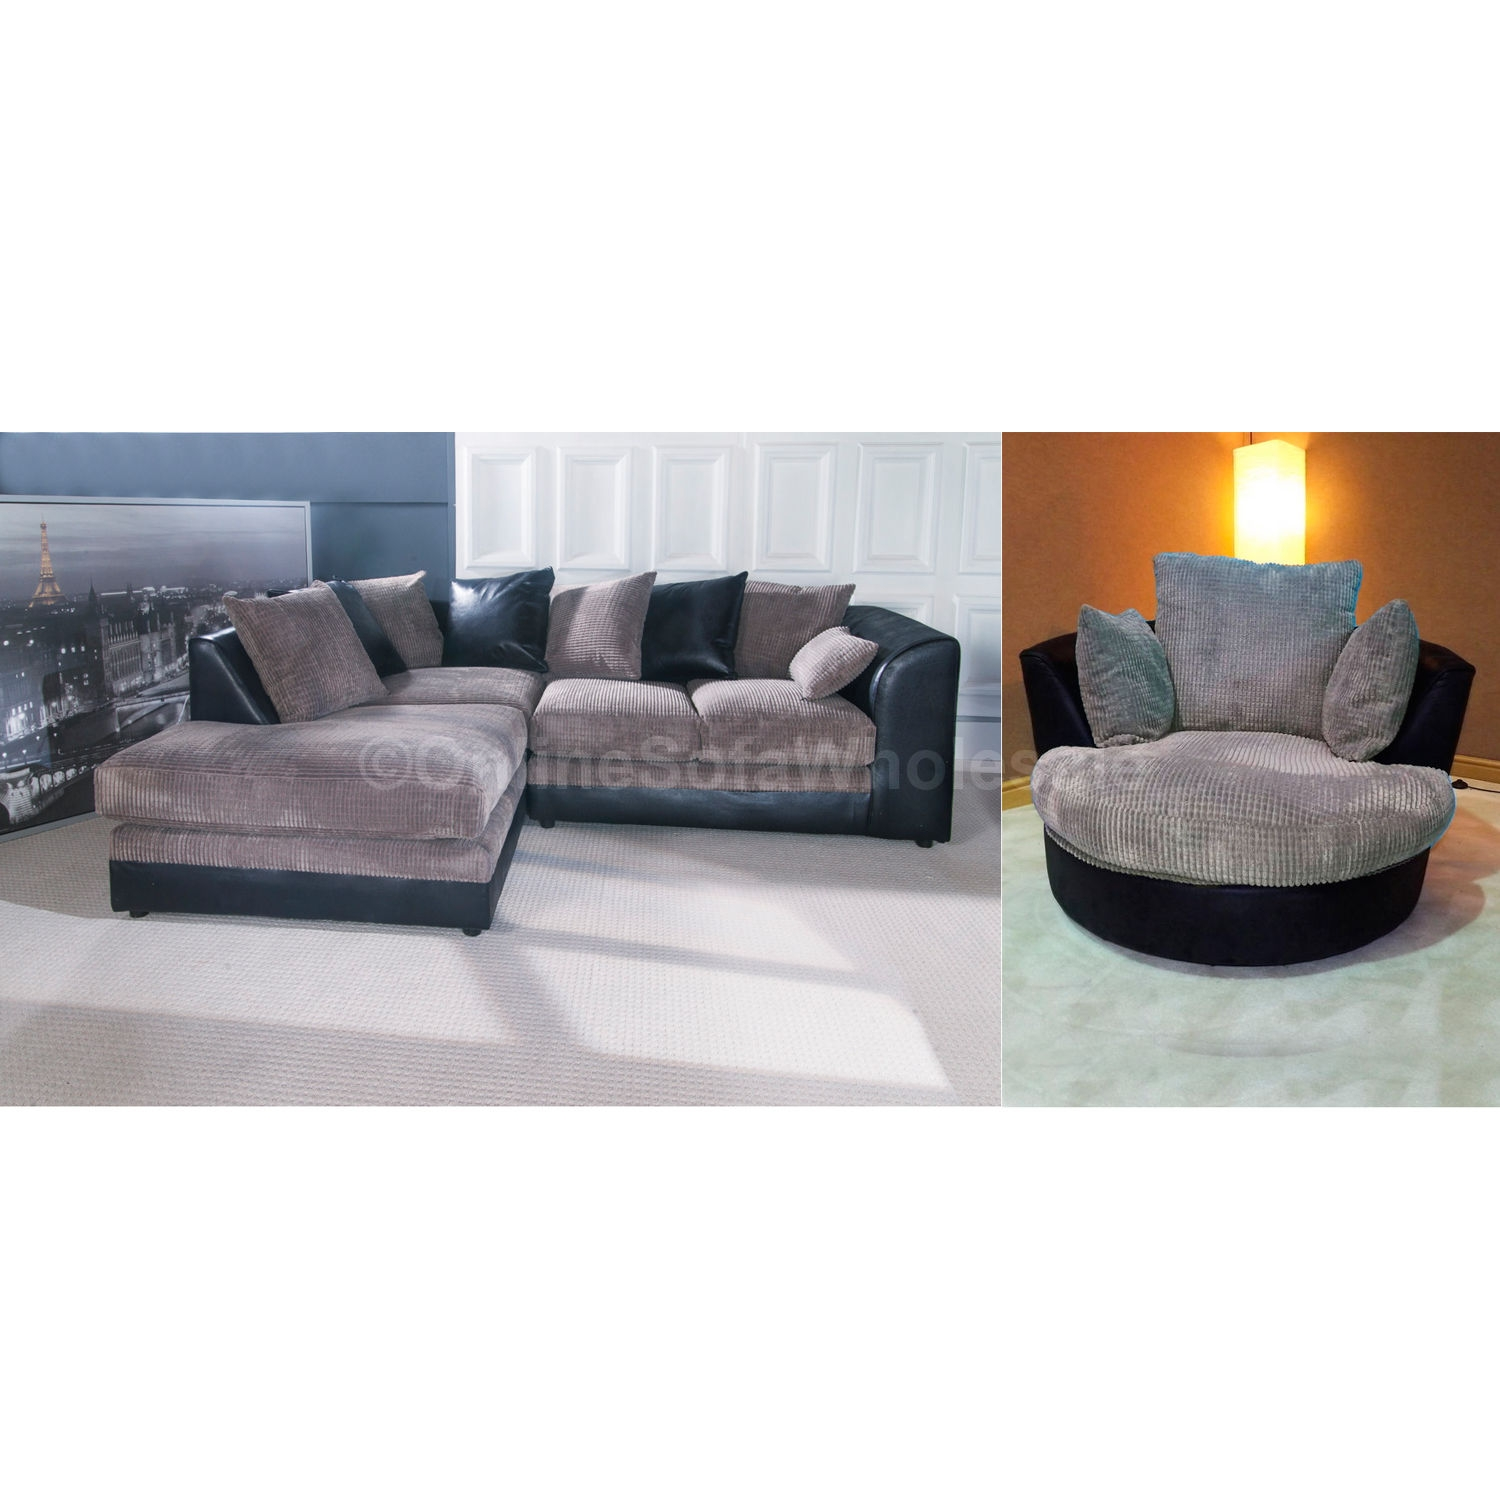 Corner Sofa With Swivel Chair Best Selling Ur7 Umpsa 78 Sofas With Corner Sofa And Swivel Chairs (View 5 of 15)